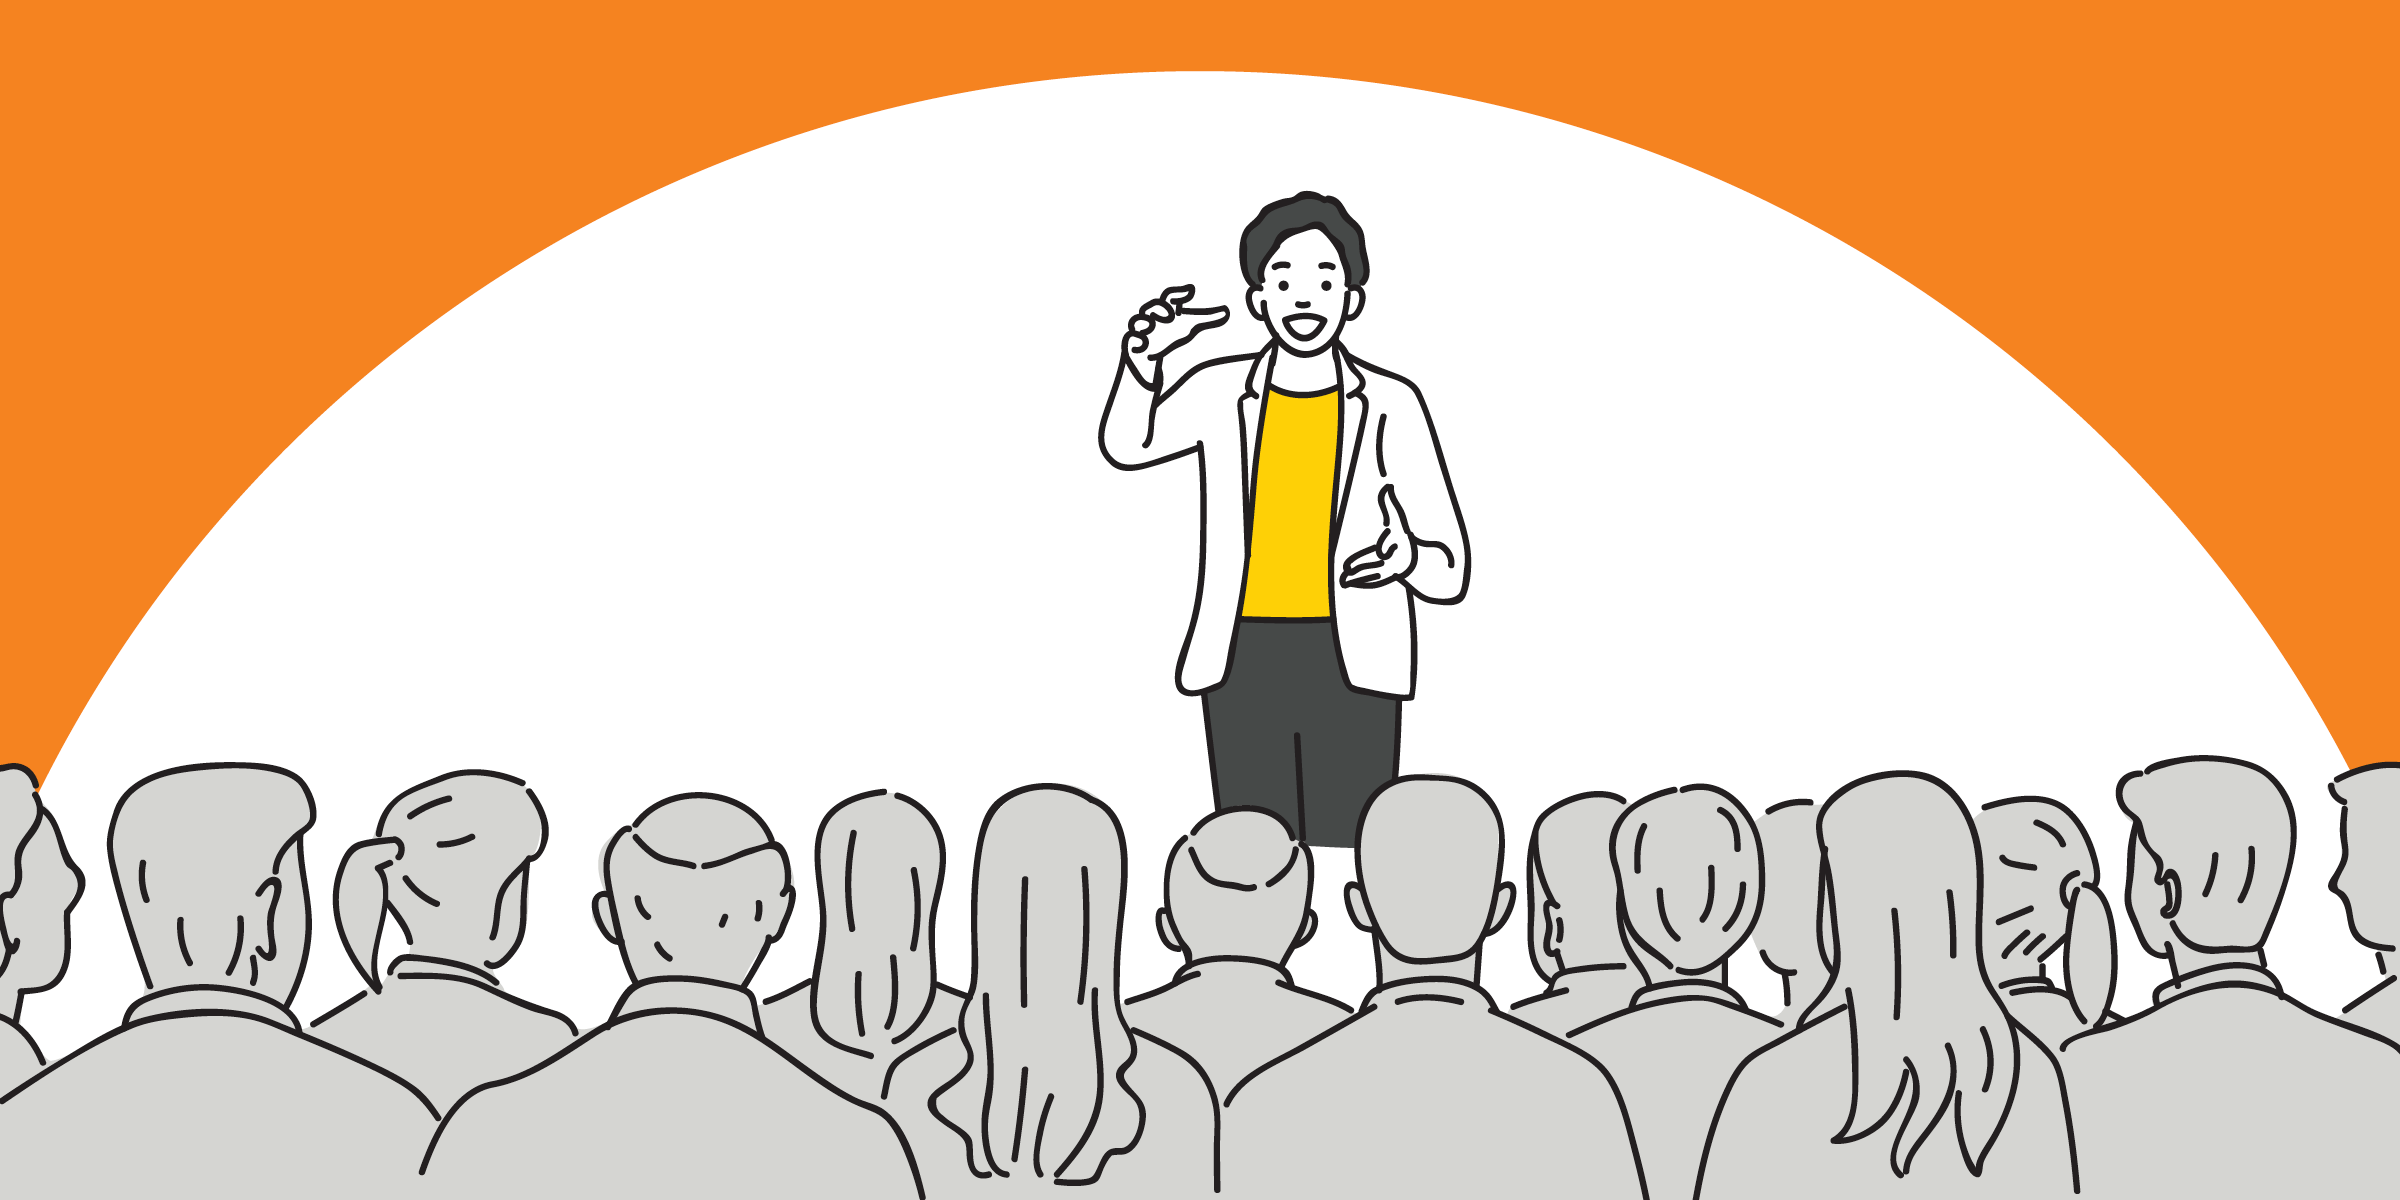 drawing of a speaker standing in front of an audience and gesturing with both hands